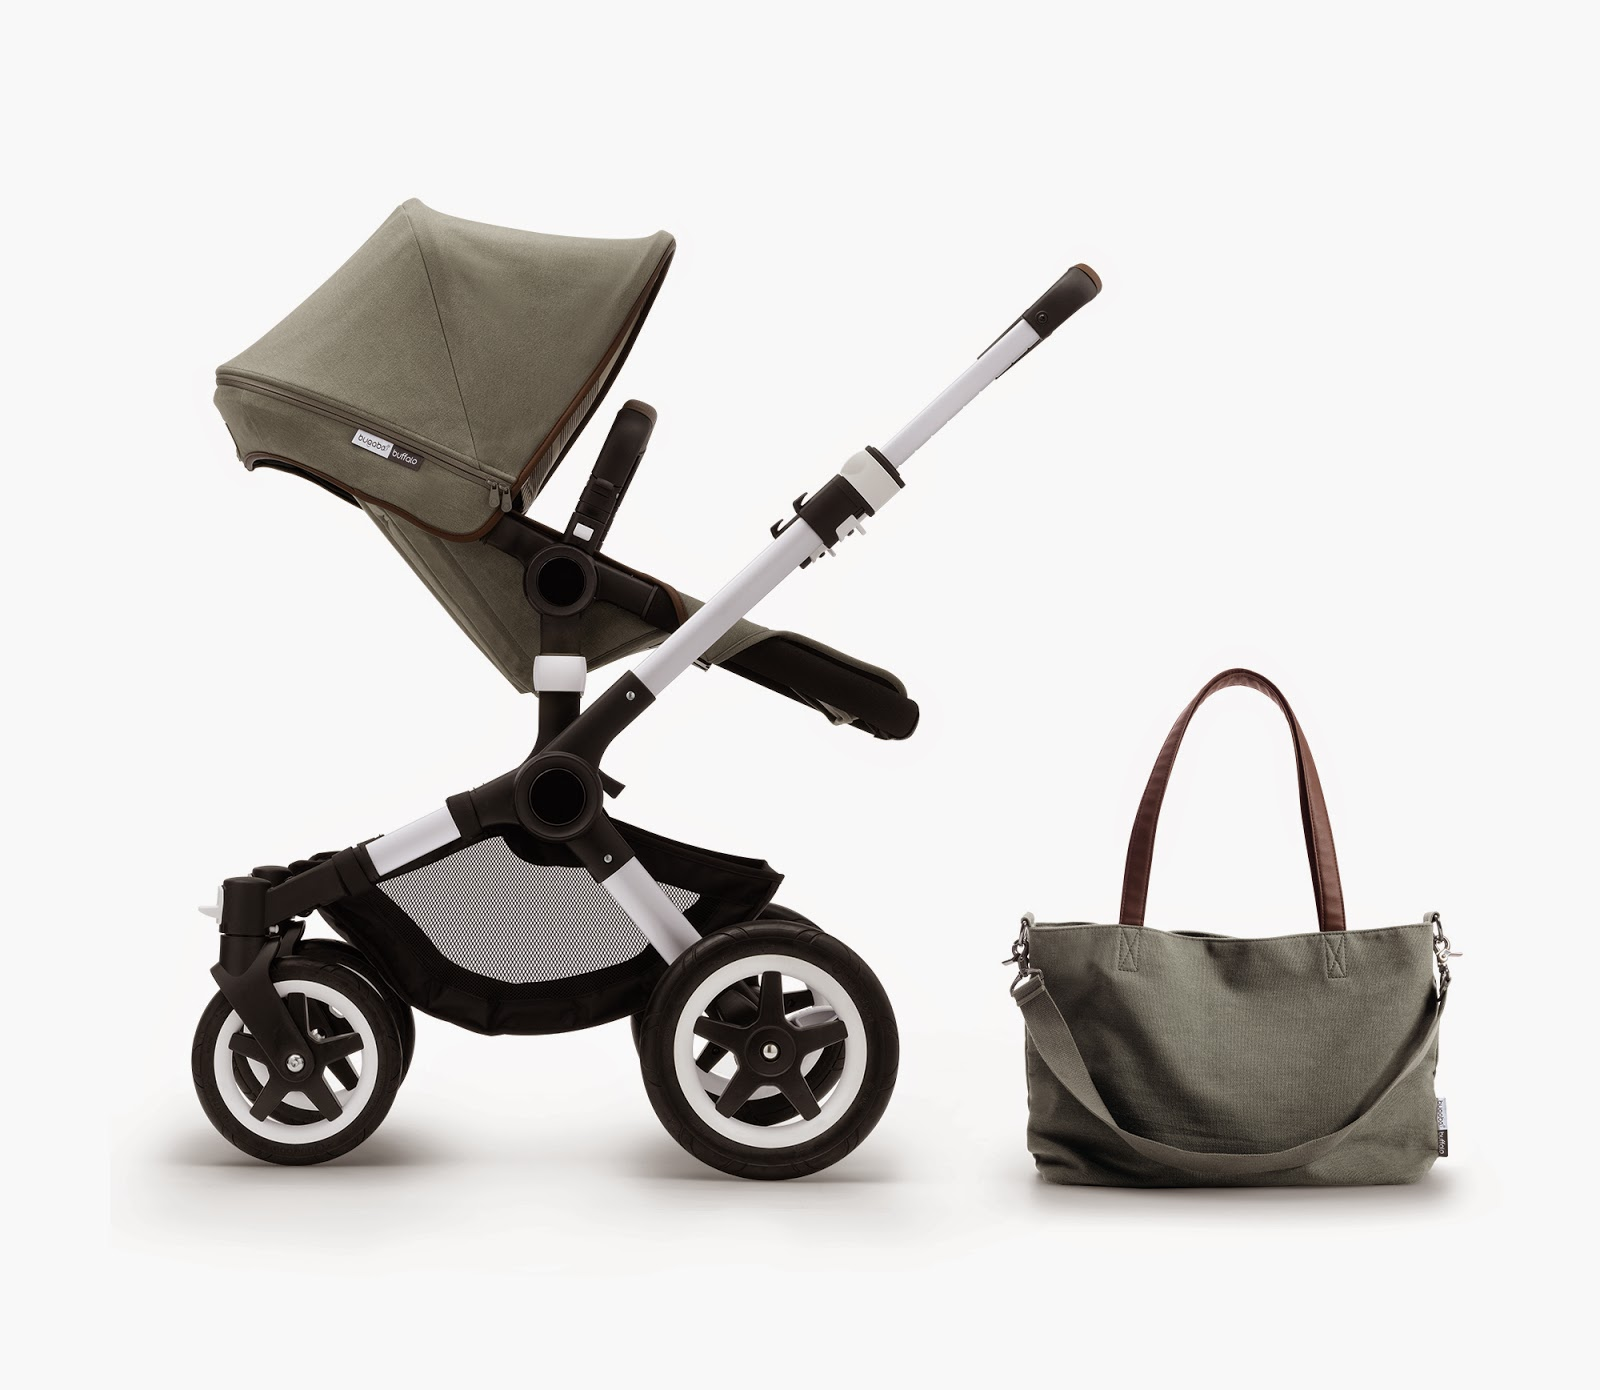 Bugaboo Grey Baby Bag Mum Of Five Staying Sane The Brand New Limited Edition